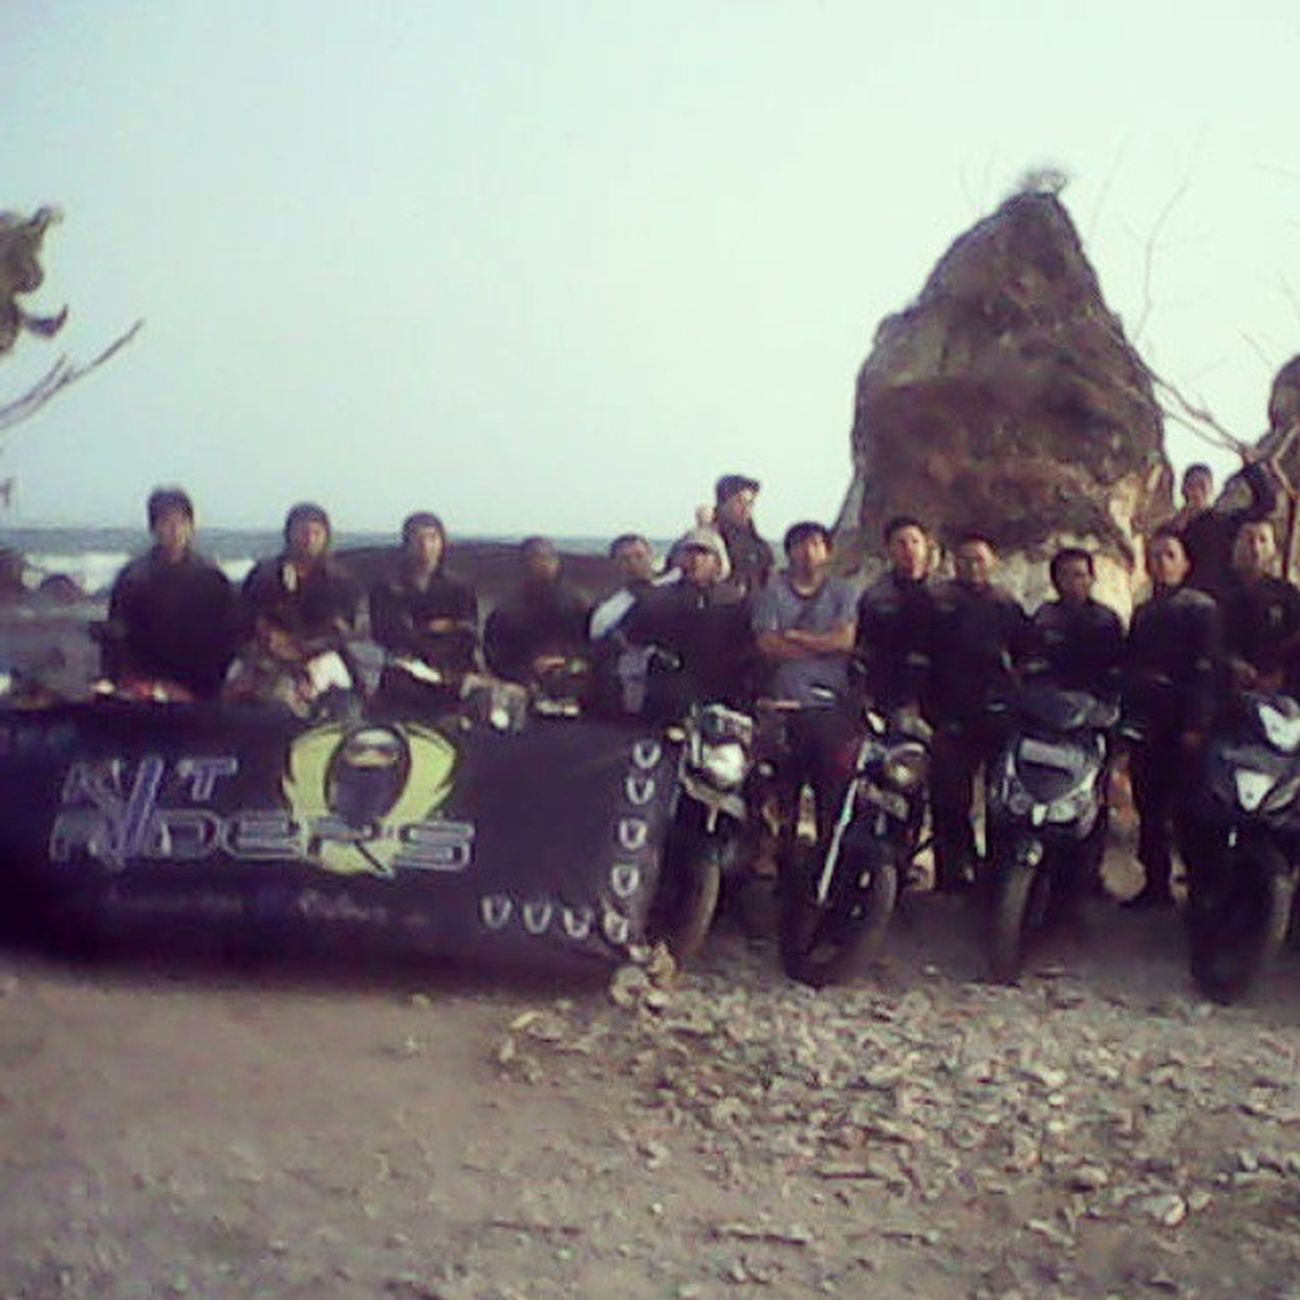 KIT Riders on Tanjung Layar Sawarna Beach - Indonesia Journey Adventouring Touring Community Bikers_network Bikerslife Biker Bikerindonesia Instapict Tanjunglayar Sawarna Sawarnabeach Nusantararide Jelajahindonesia Jelajahnusantara Jelajah_indonesia Ride Motorcycle